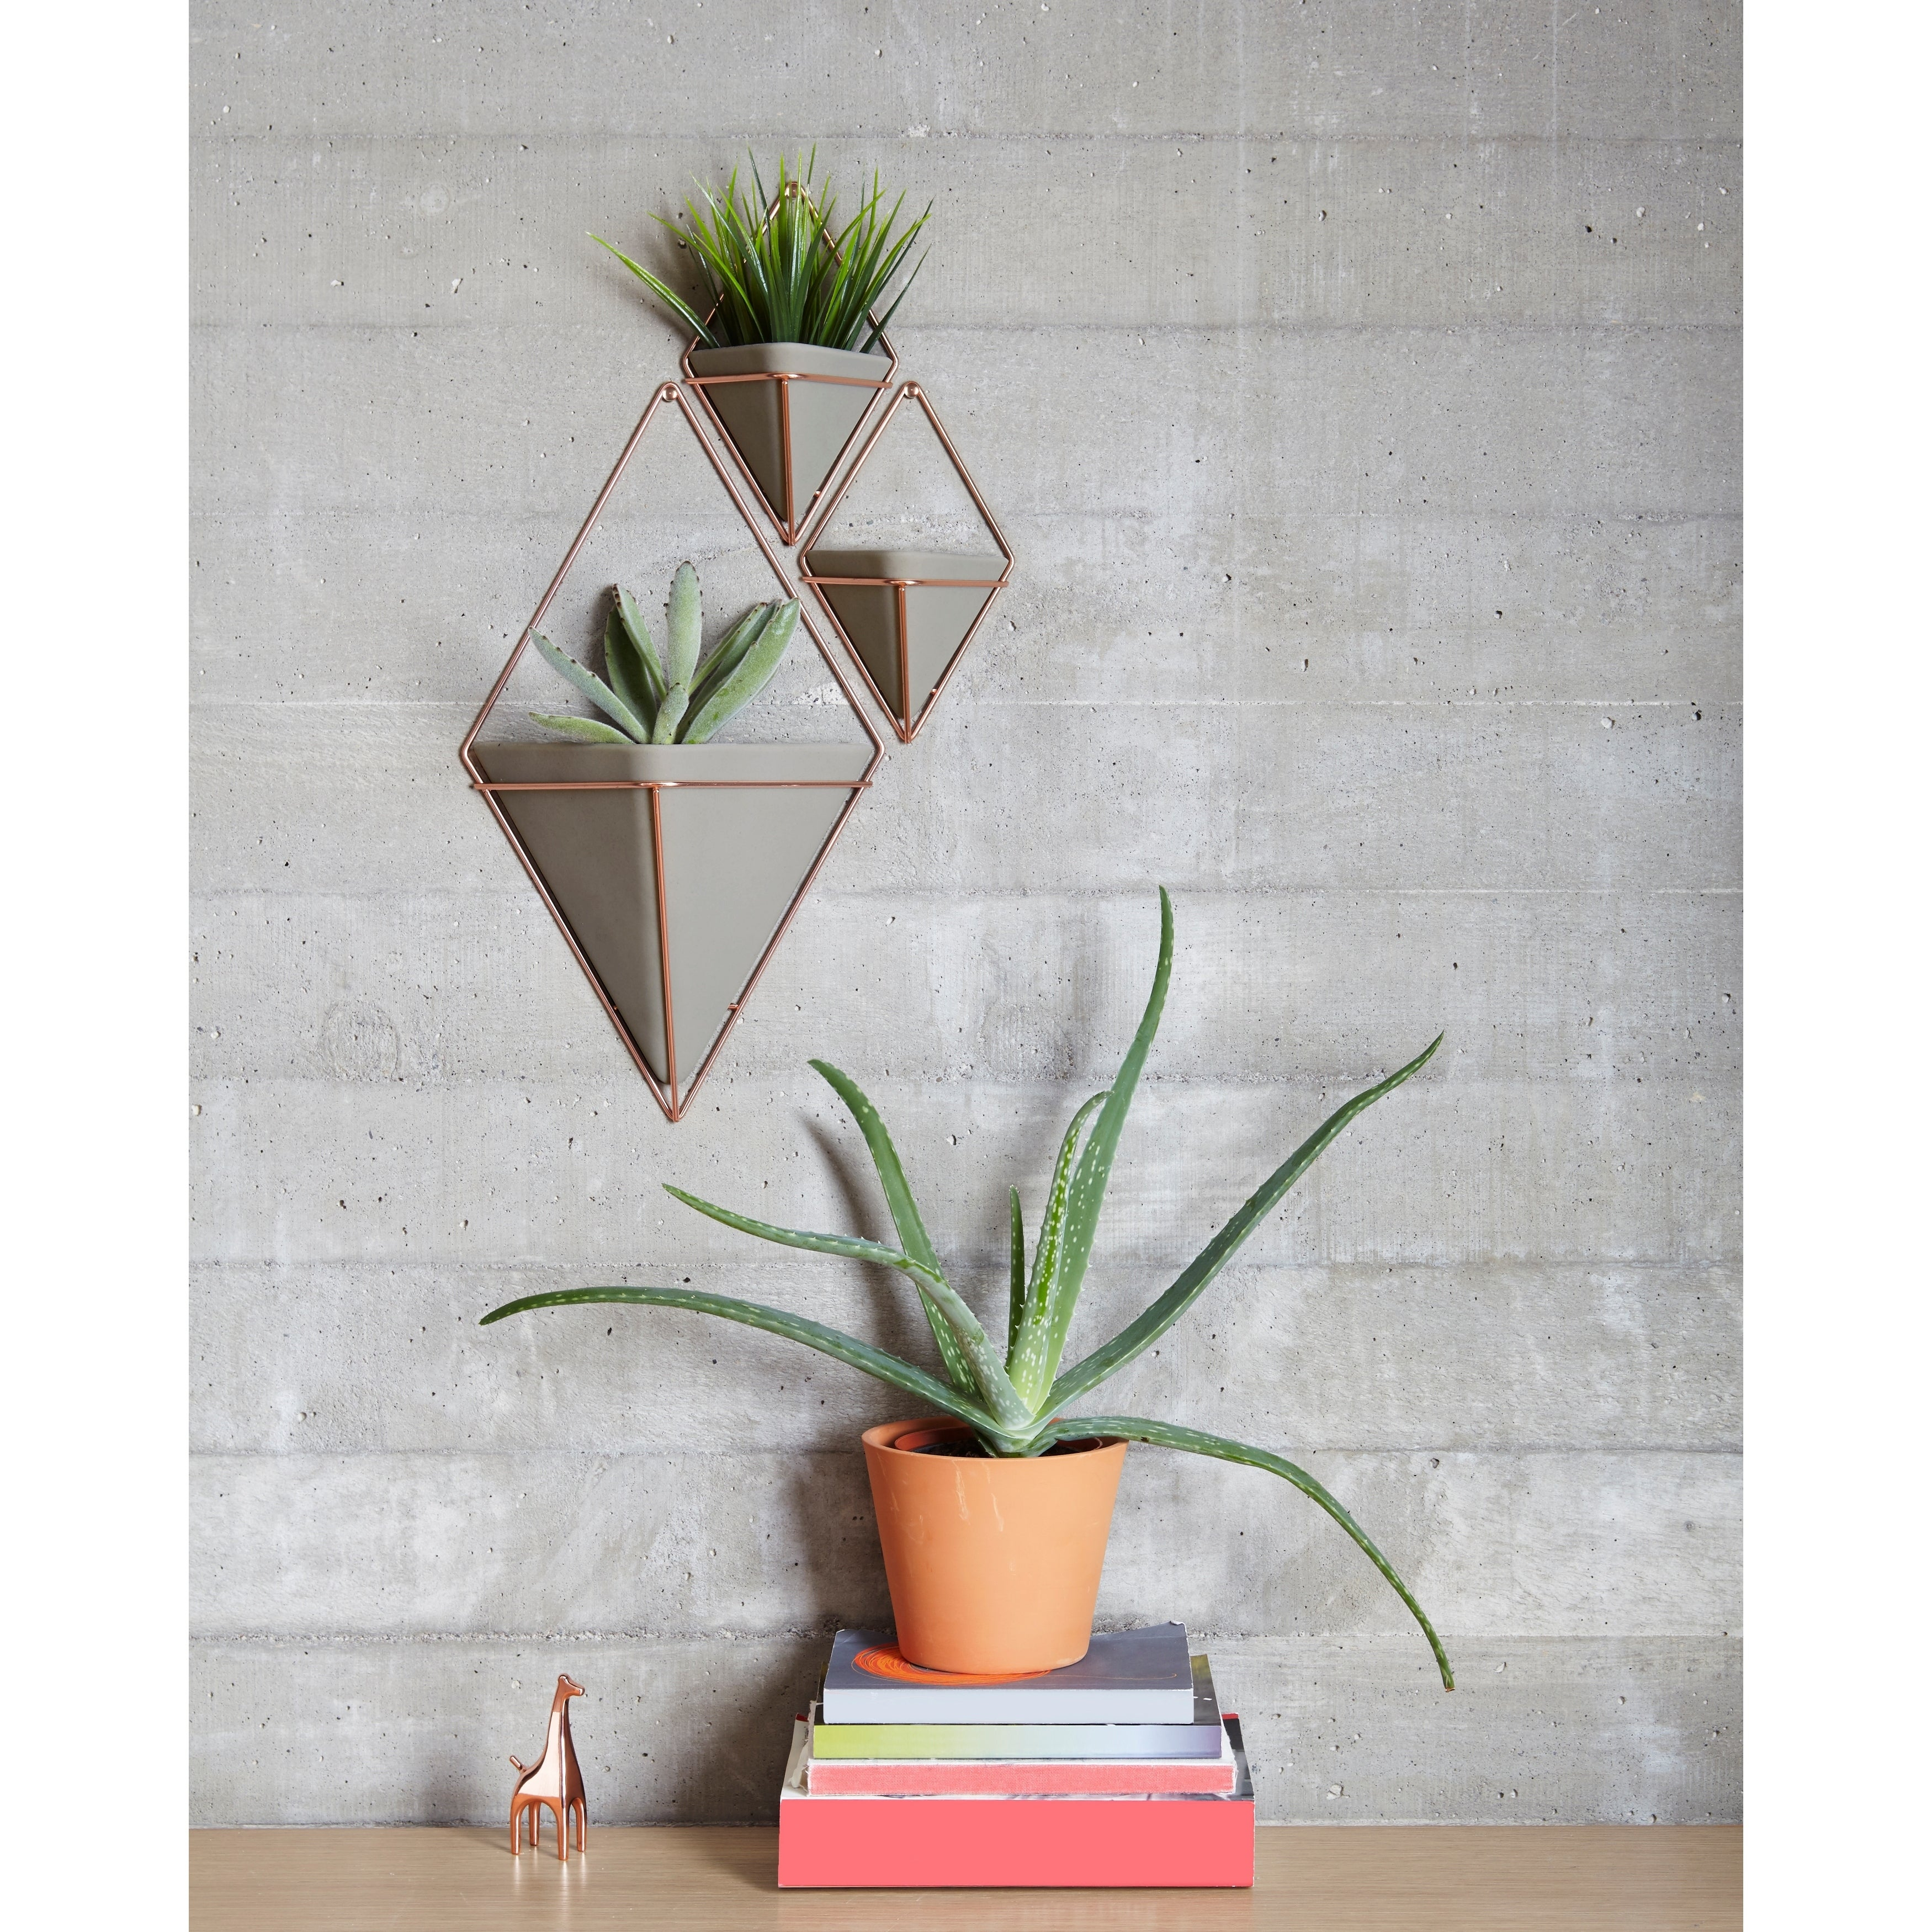 Trigg Ceramic Planter Wall Decor With Regard To Most Popular Shop Umbra Trigg Hanging Planter & Wall Decor (Set Of 2) – Free (Gallery 5 of 20)